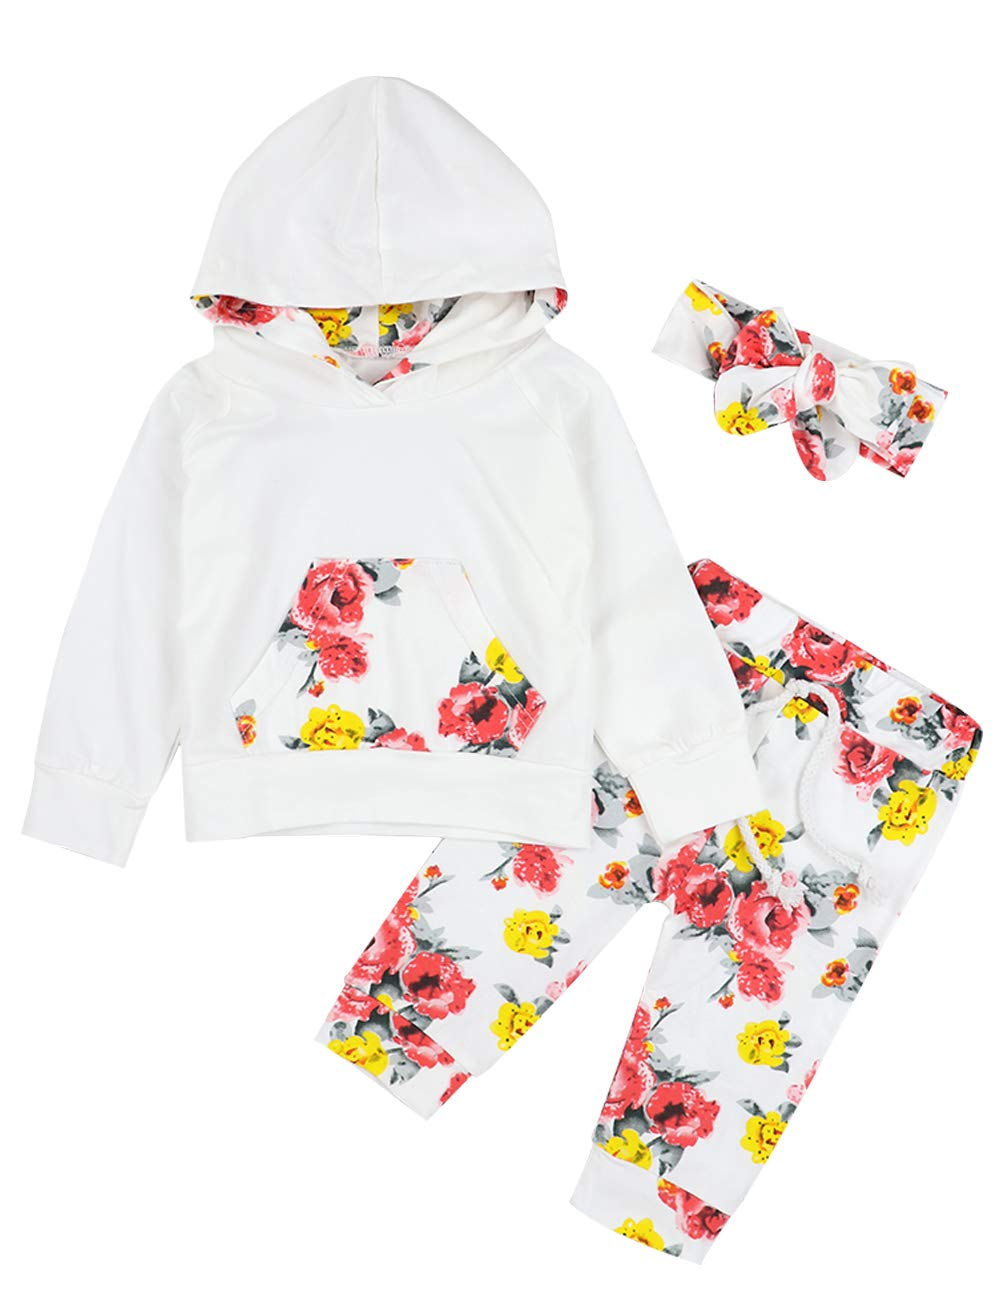 Baby Girl Clothes 0-6 Months Hoodie Tops with Kangaroo Pocket,Flowers Pant + Headband Outfits Set(0-3 Months)